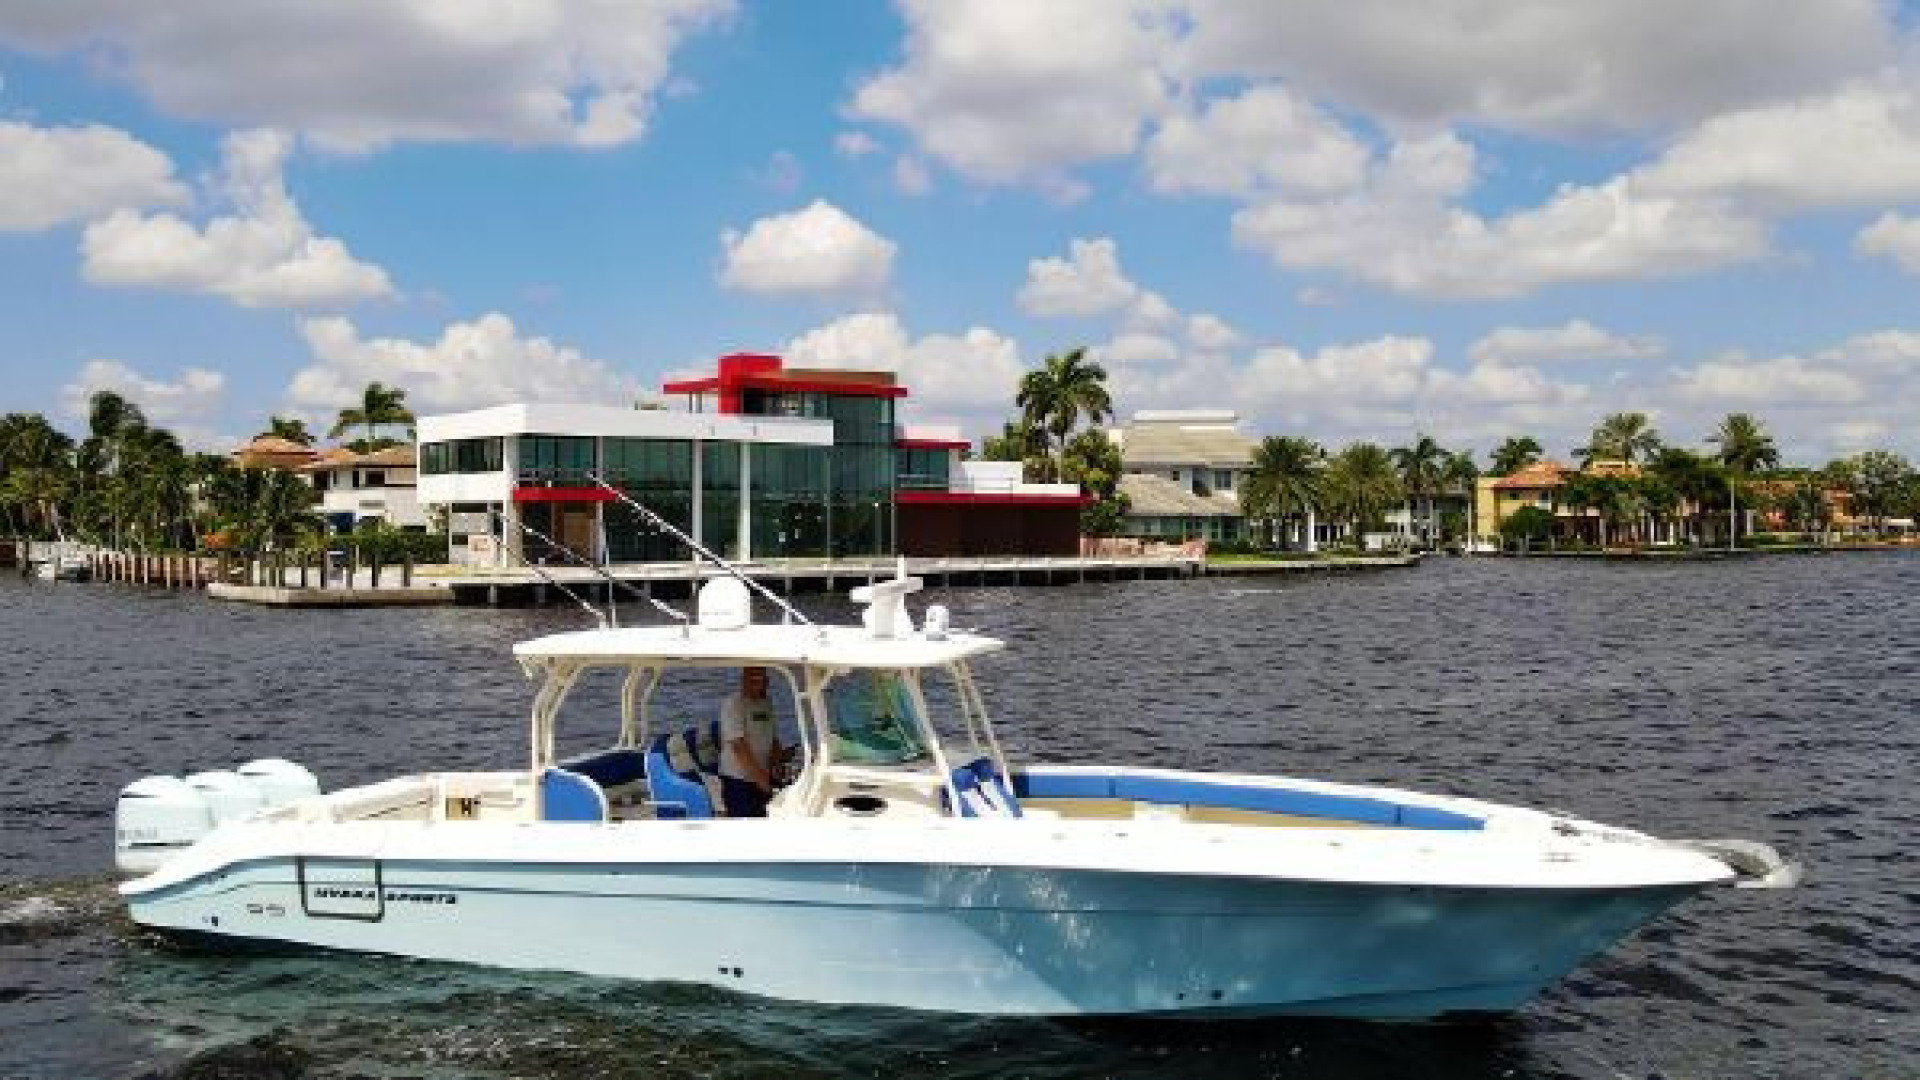 Hydra-Sports-42 Center Console 4200 SF 2011 -Fort Lauderdale-Florida-United States-1564149 | Thumbnail